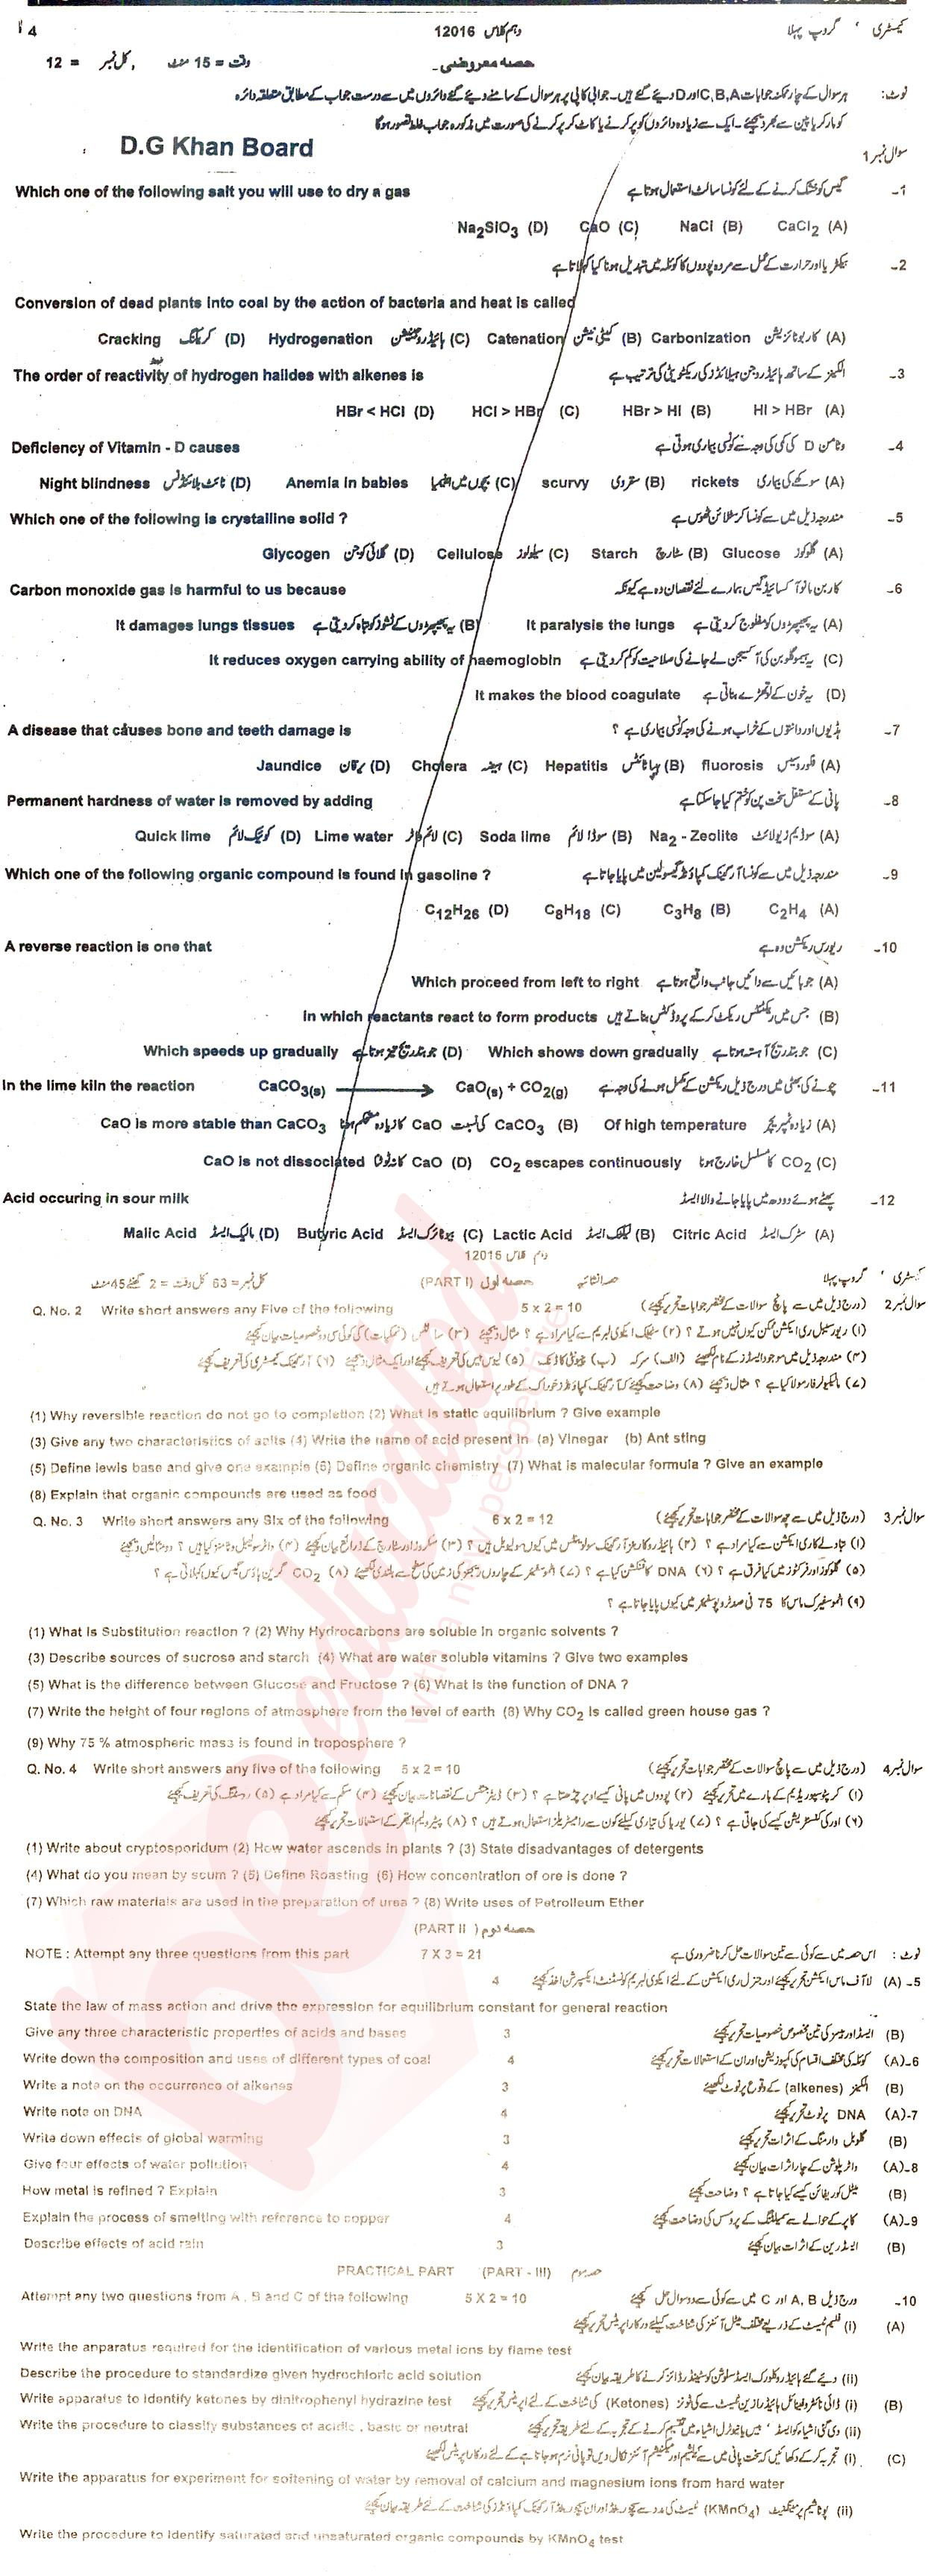 Bise 10th Class DG Khan Board English Medium Past Papers - 10th